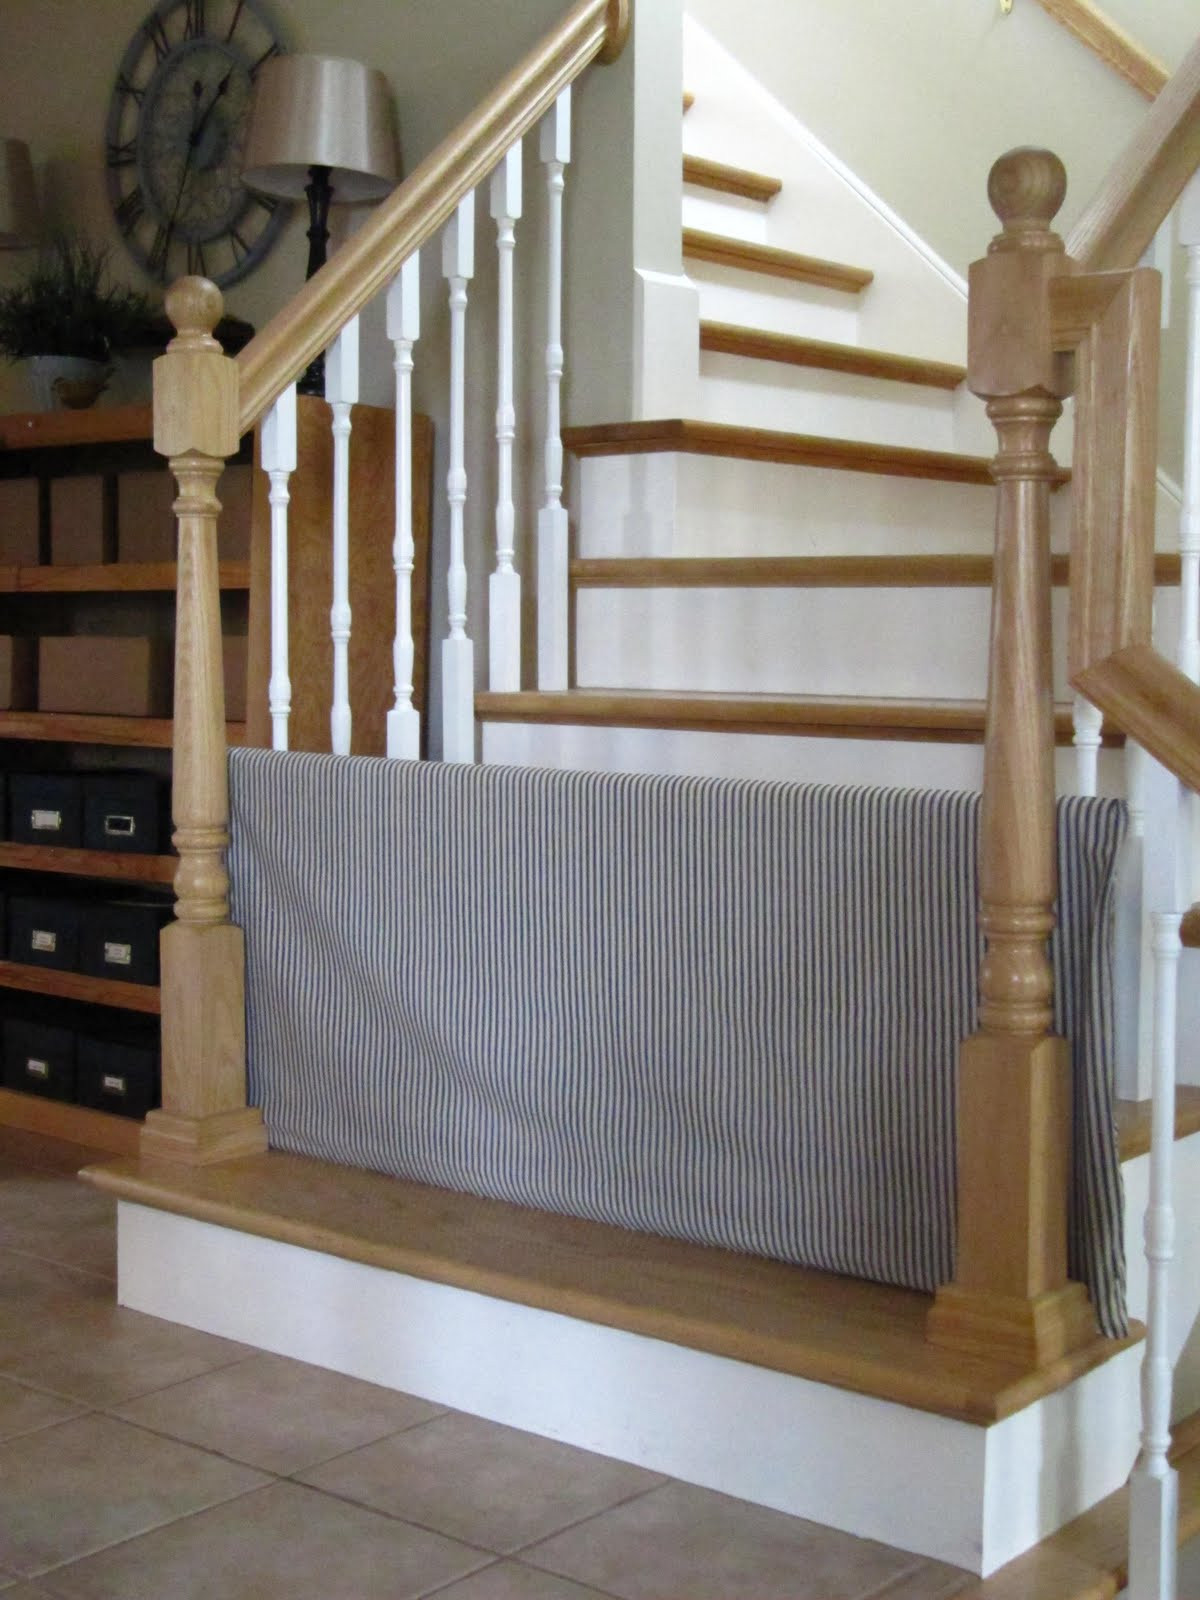 Best ideas about DIY Baby Gate For Stairs . Save or Pin Tool Time Tuesday PVC Dog Gate and Stair Baskets Too Now.